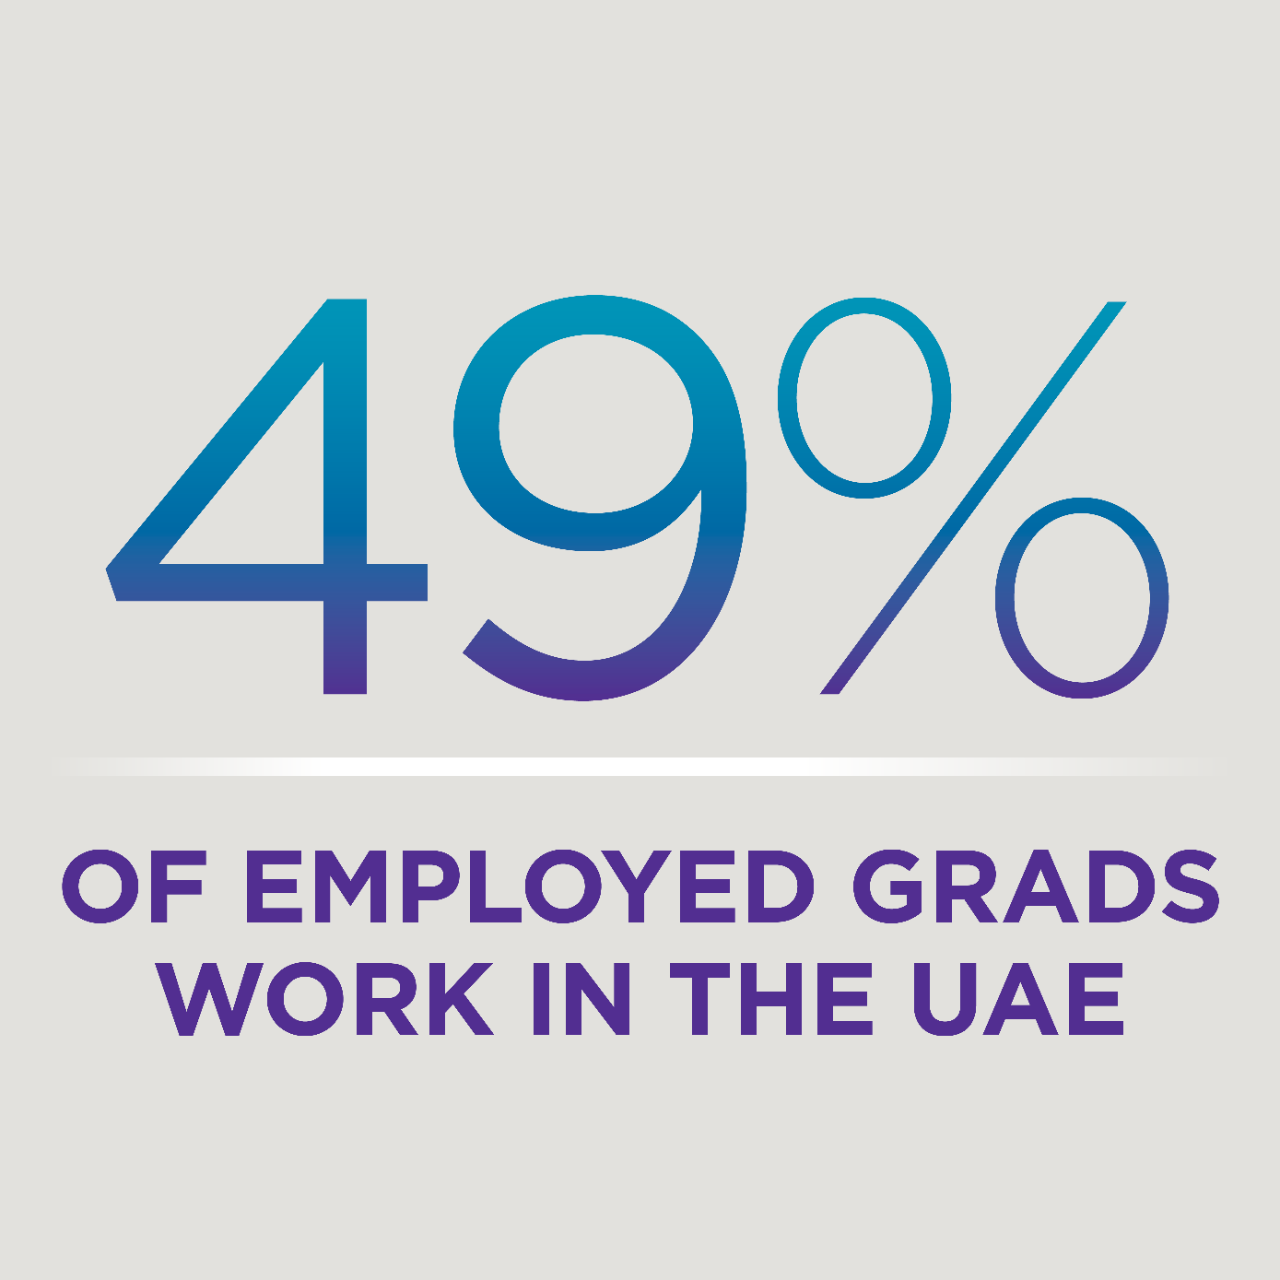 49% of employed grads work in the UAE.